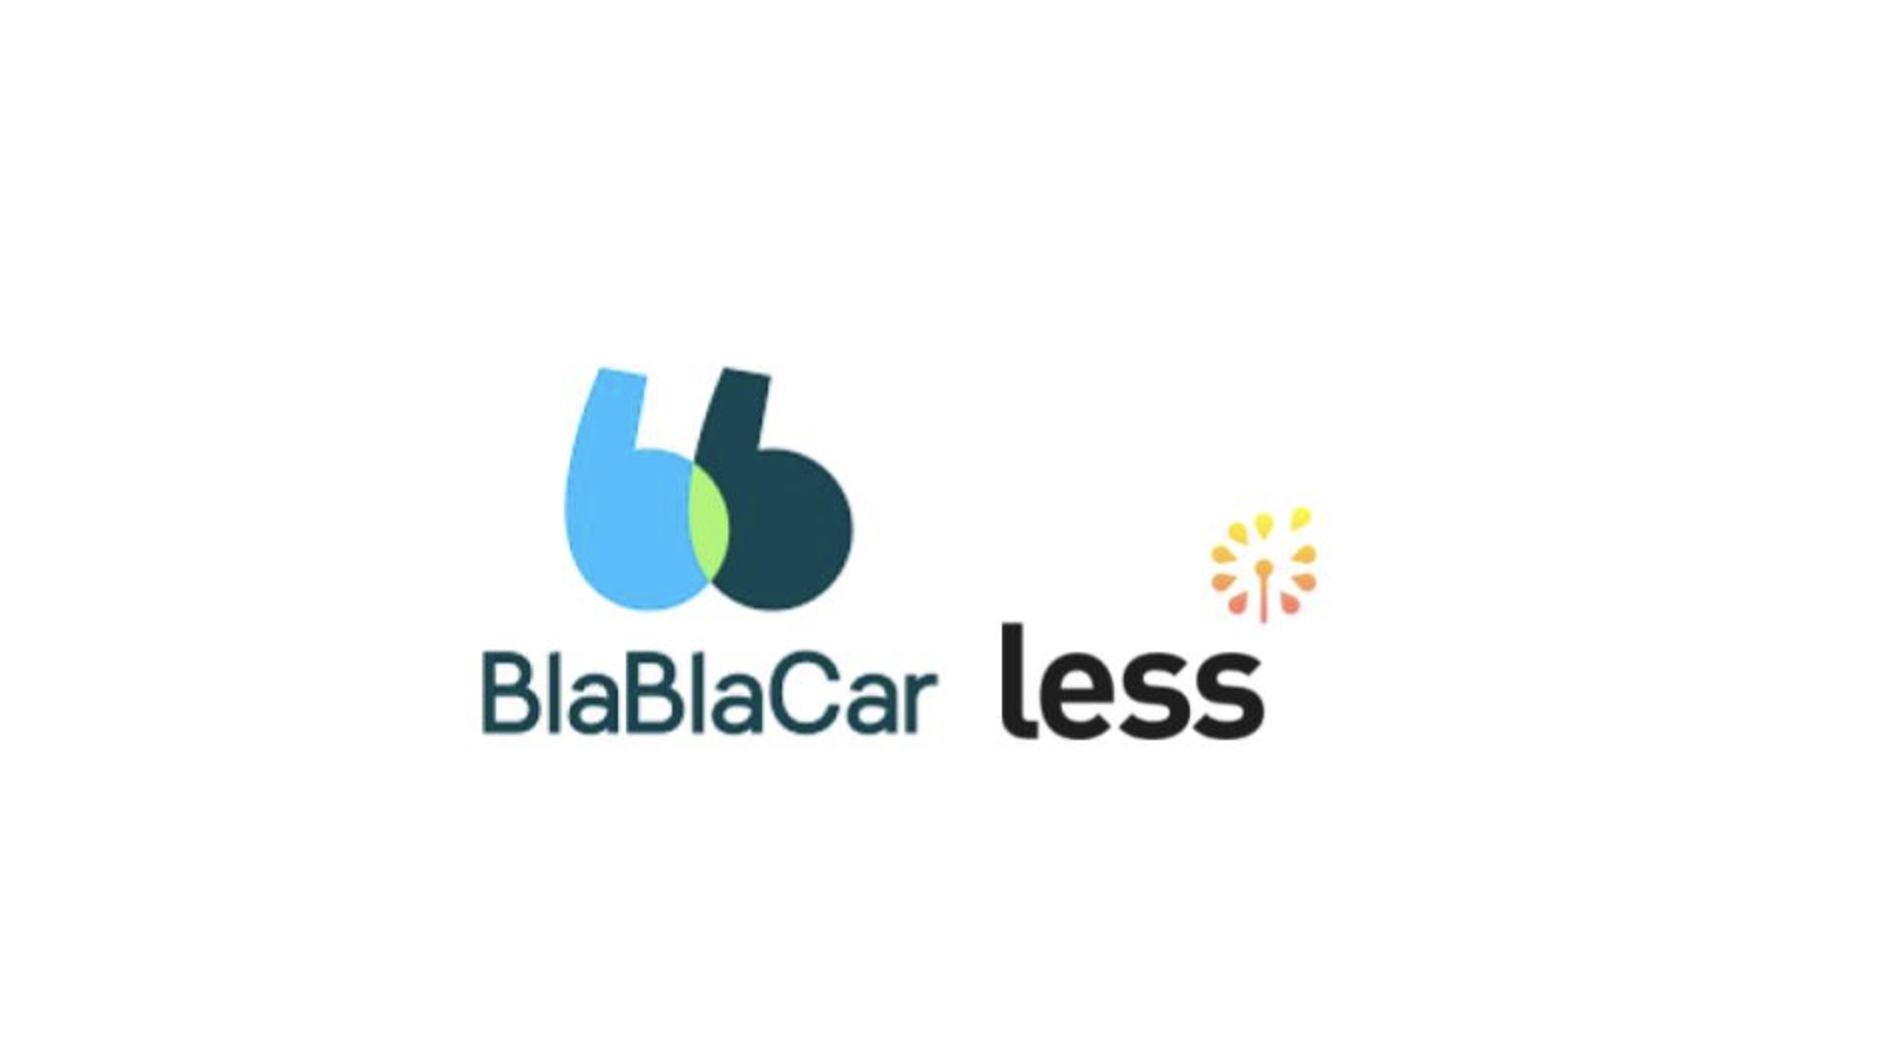 BlaBlaCar acquires urban carpooling company Less